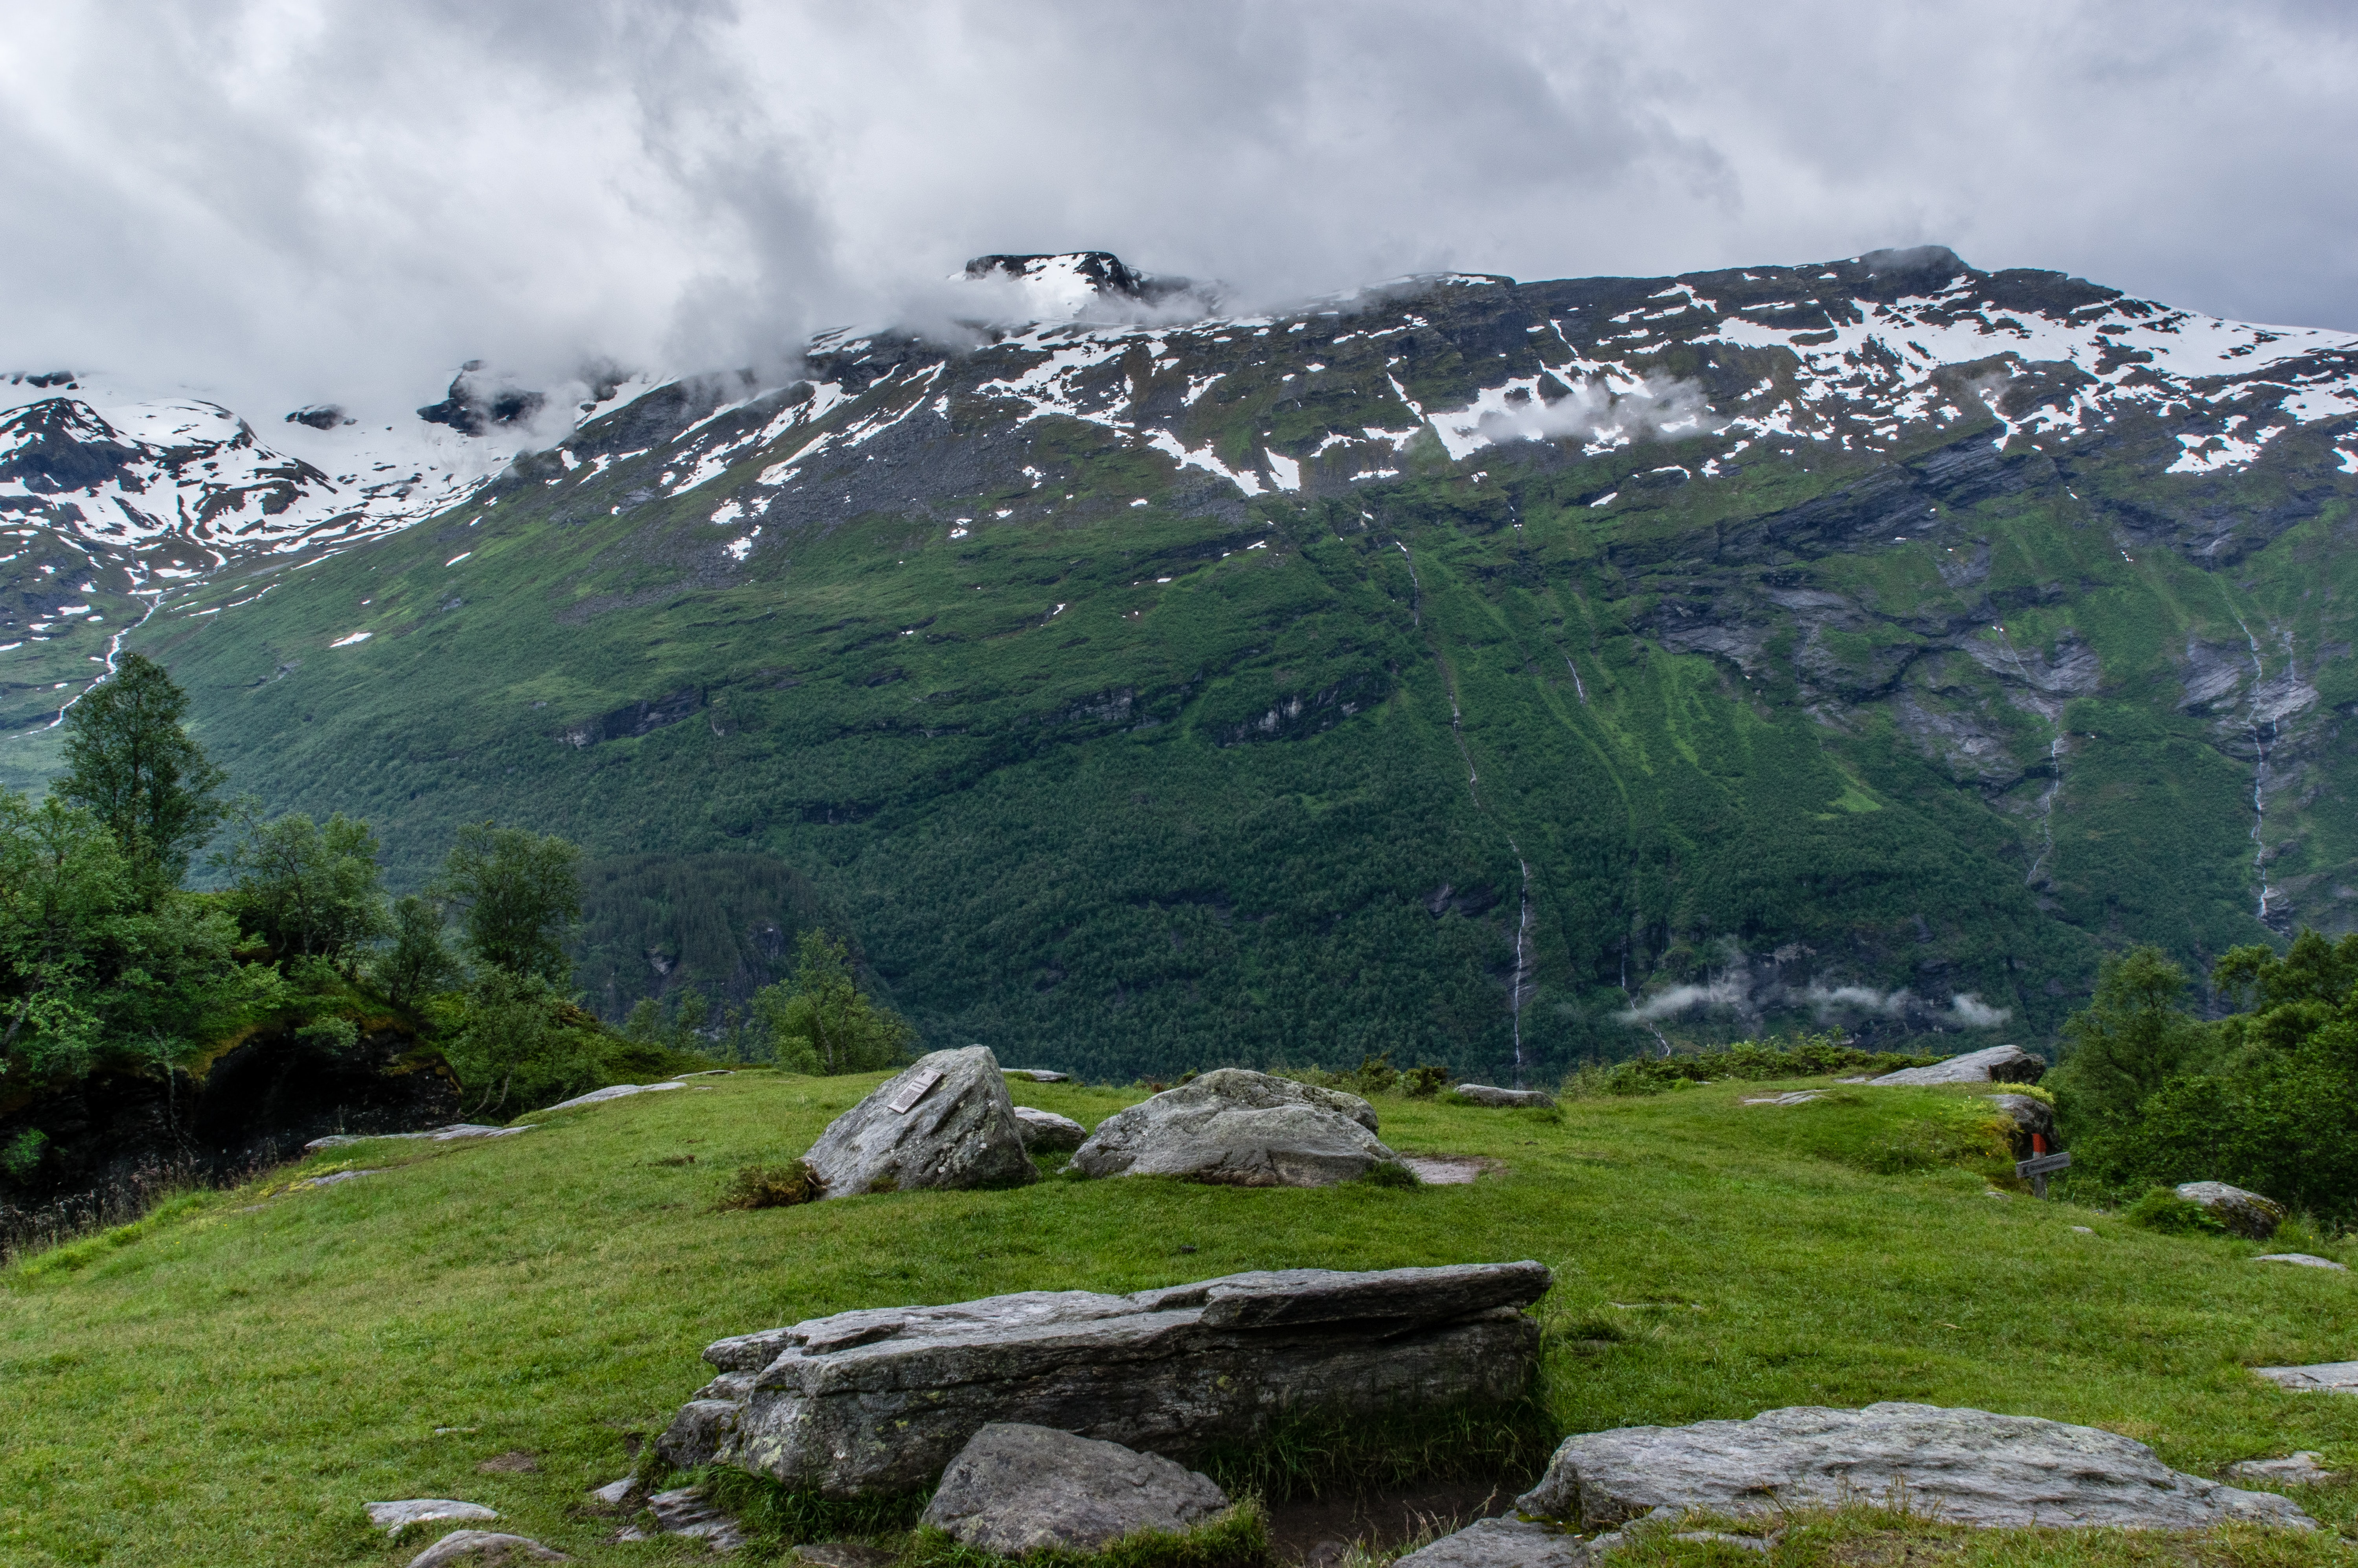 View of clouds and snowy mountains from a stony grassy slope in the village of Geiranger